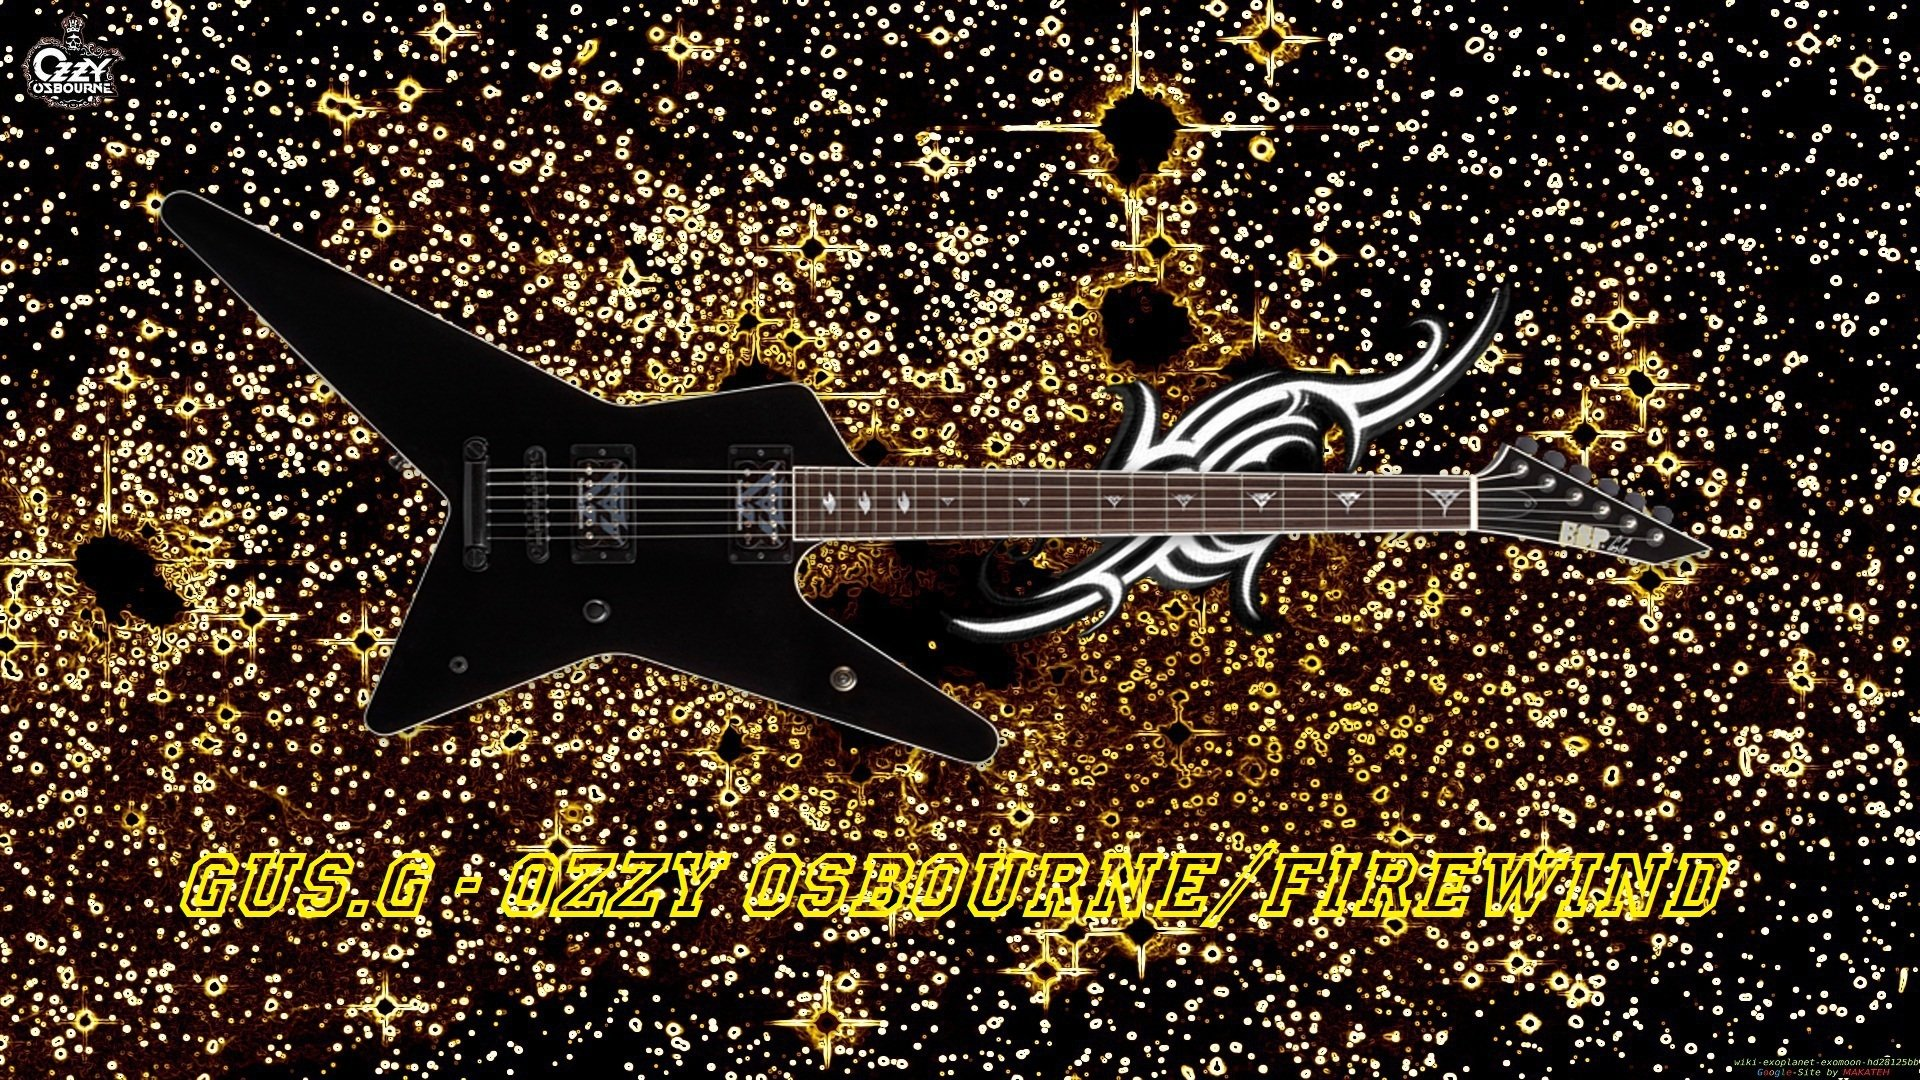 708 guitar hd wallpapers backgrounds wallpaper abyss page 10